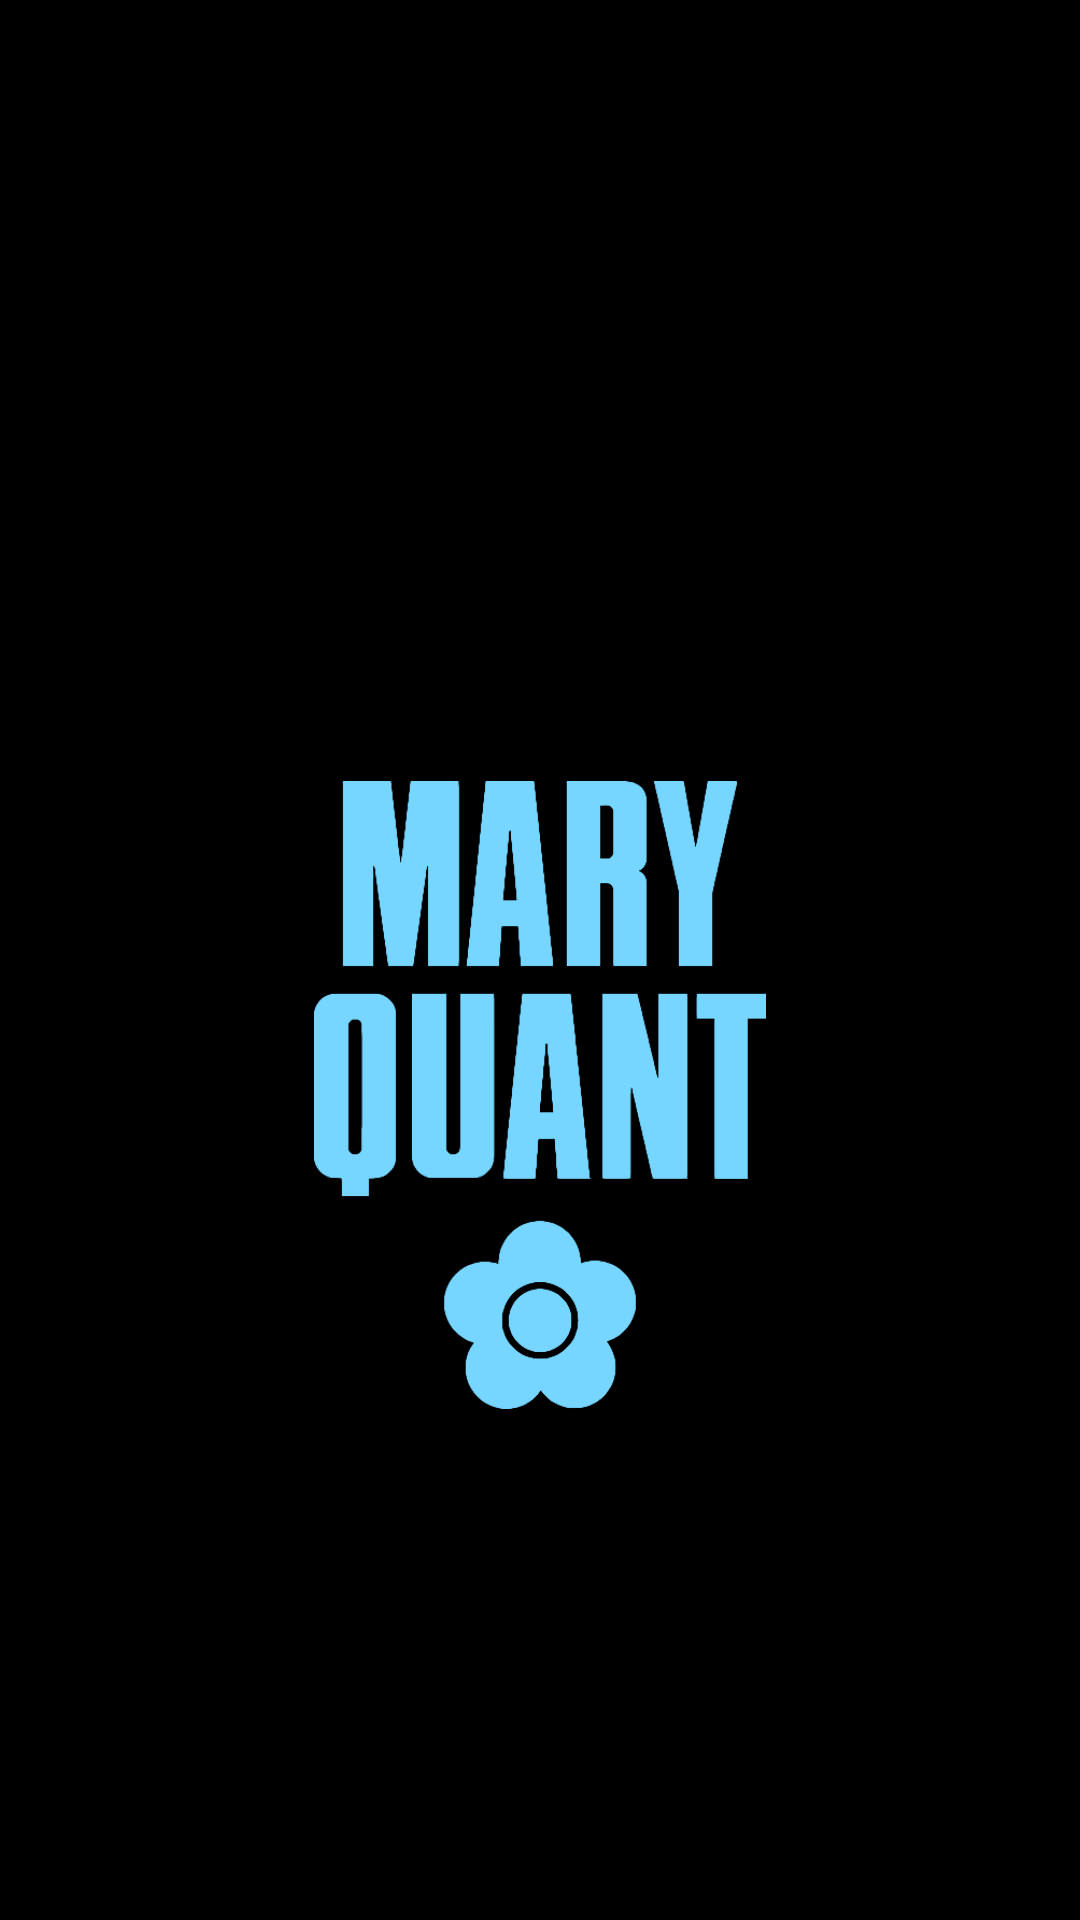 maryquant i07 - 20 MARY QUANT HQ Smartphone Wallpaper Collection